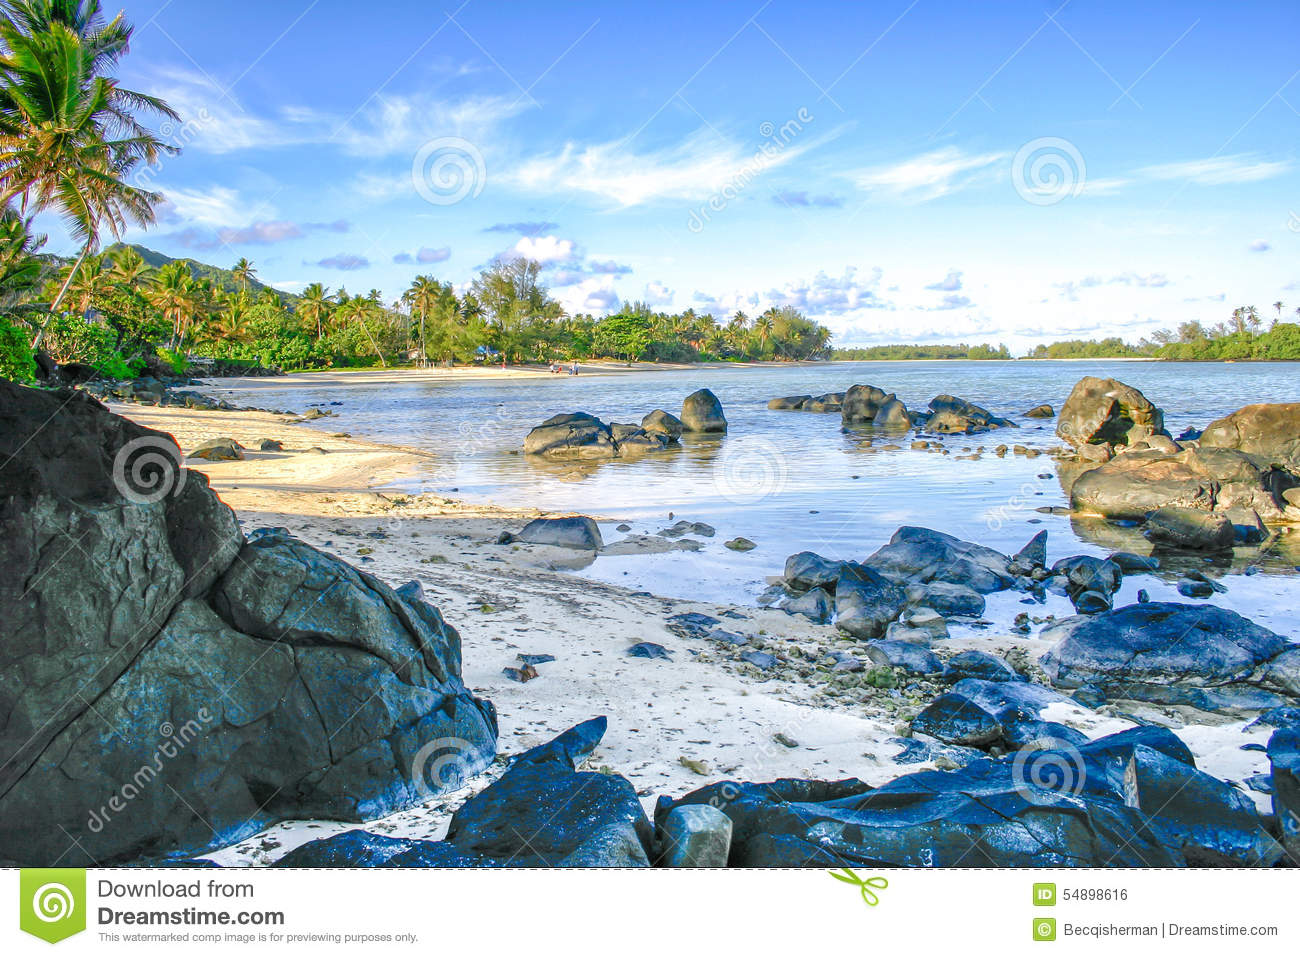 Lagoon Tropical Island: Boulders Rest In A Crystal Clear Lagoon On The Tropical